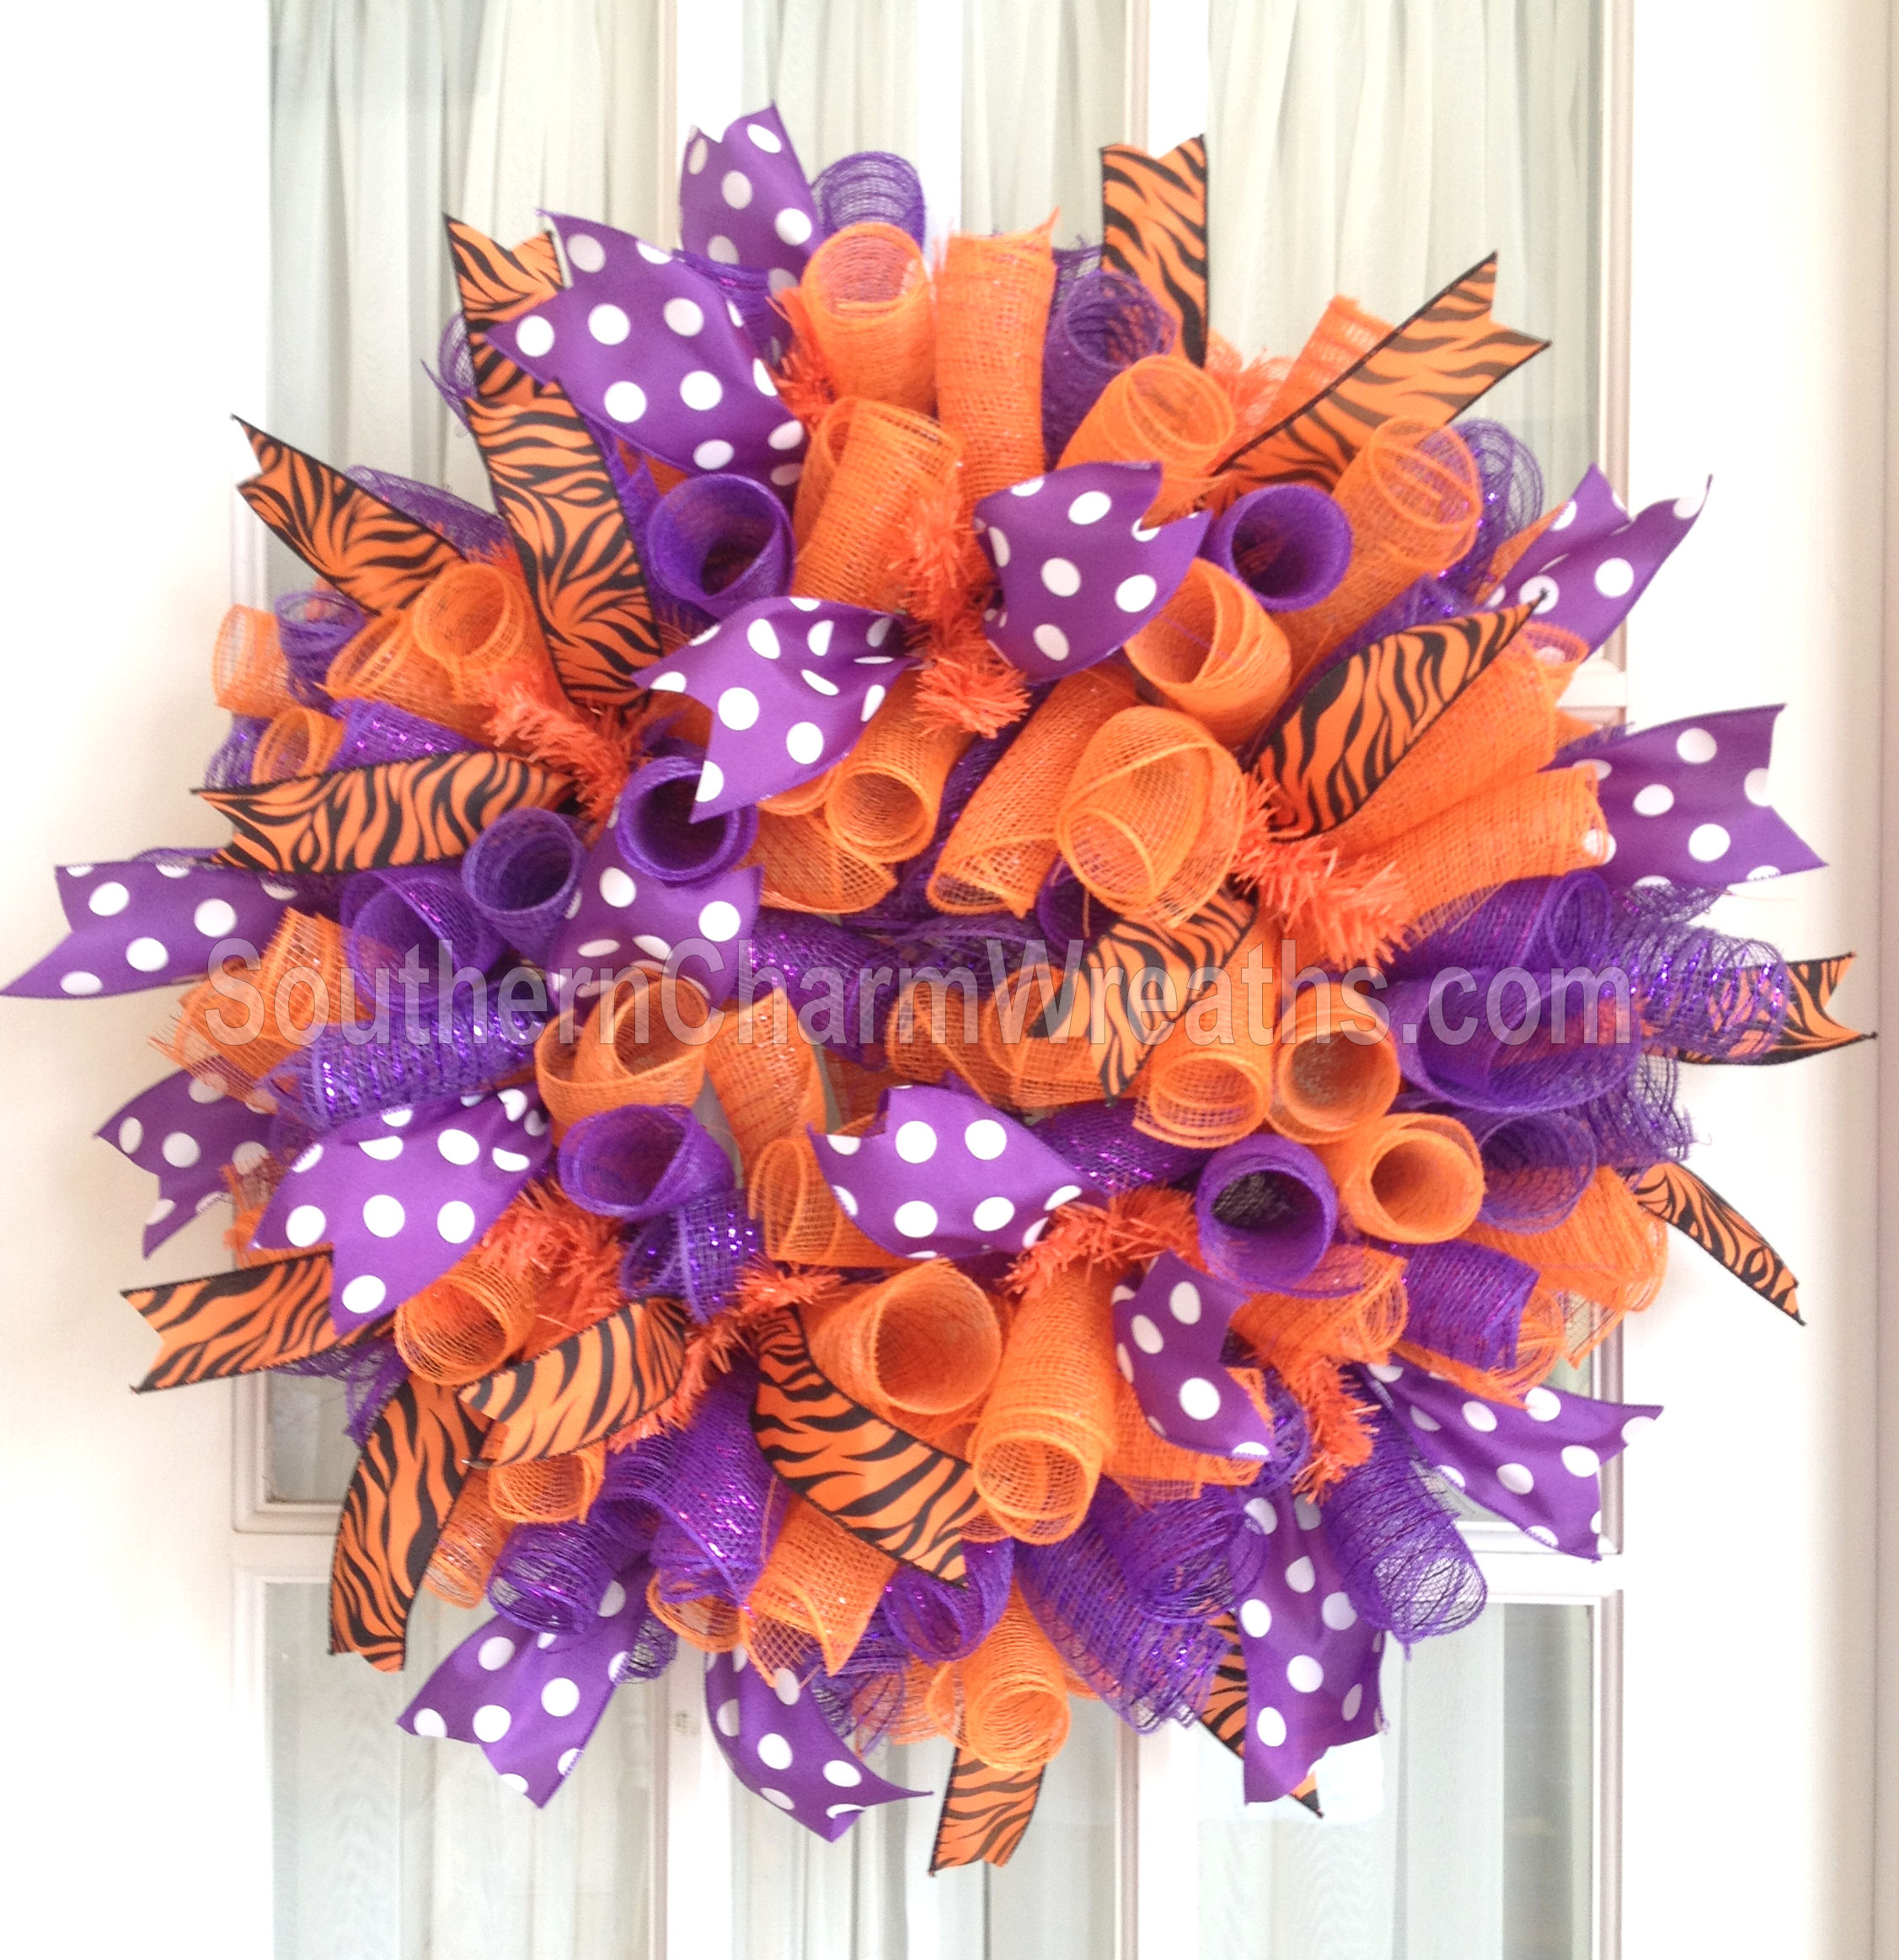 deco-mesh-curly-clemson-purple-4L